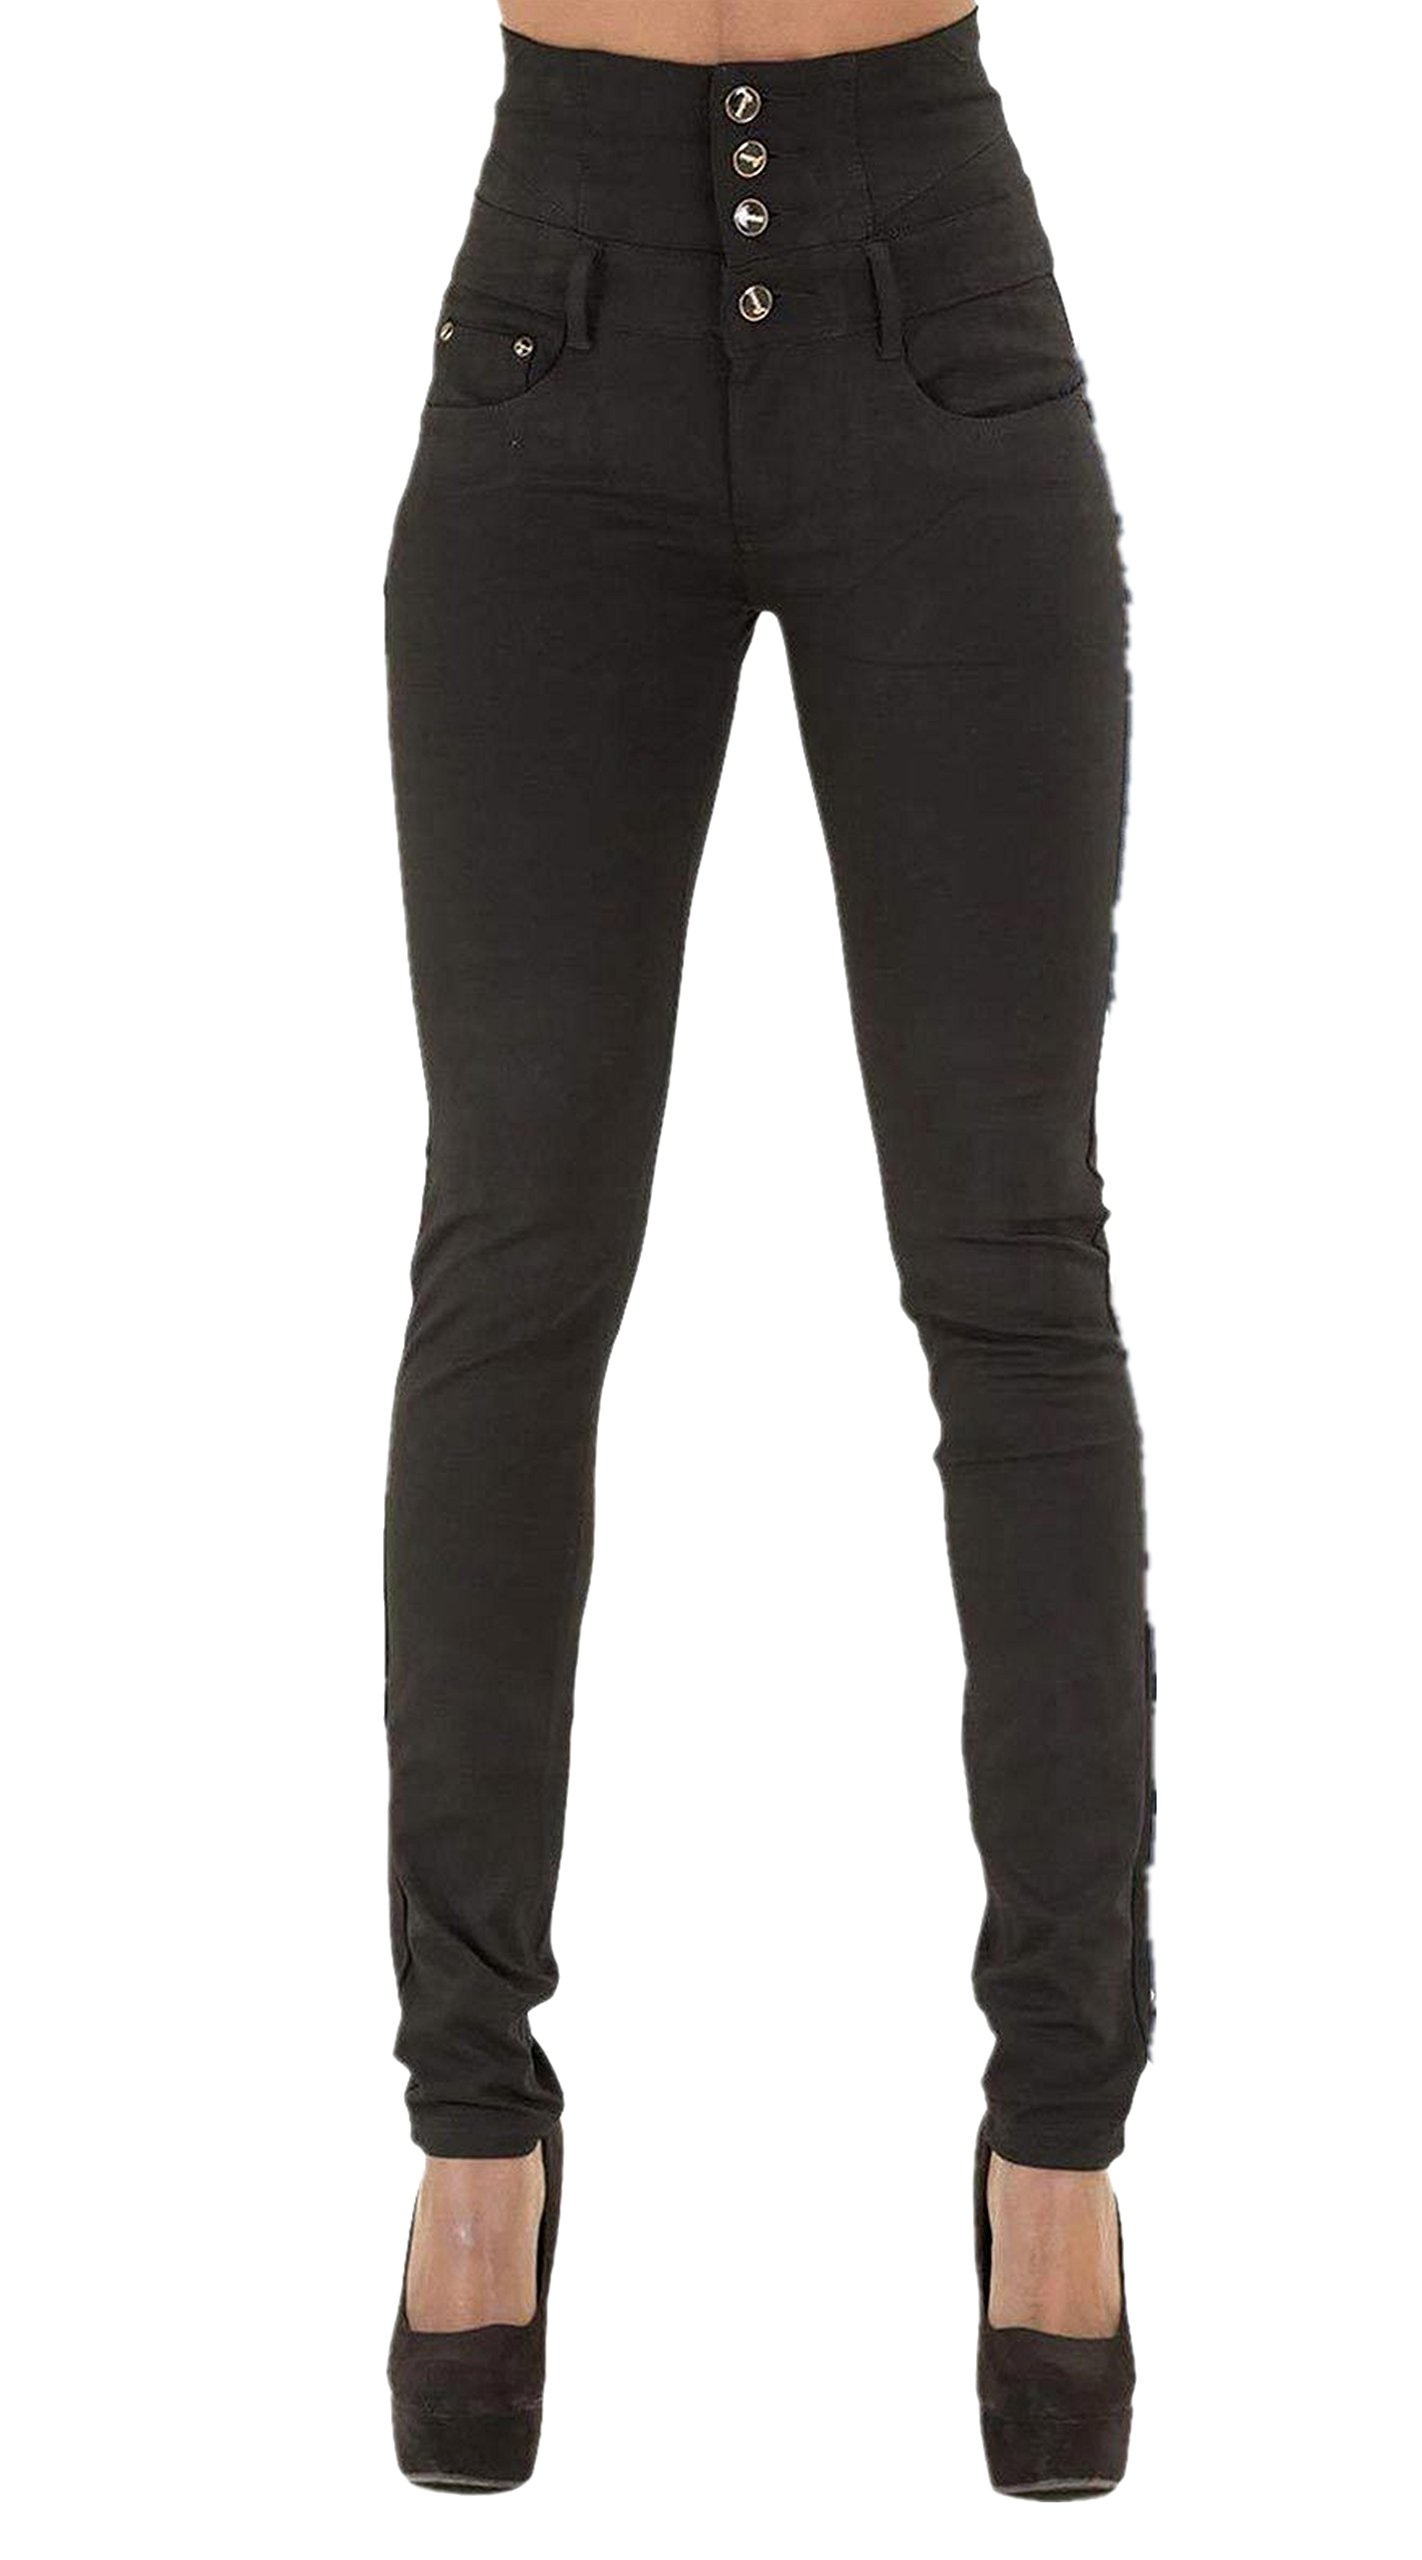 GALMINT Women's Juniors High Rise Irresistible Jegging Pull-On Stretch Skinny Jean Black